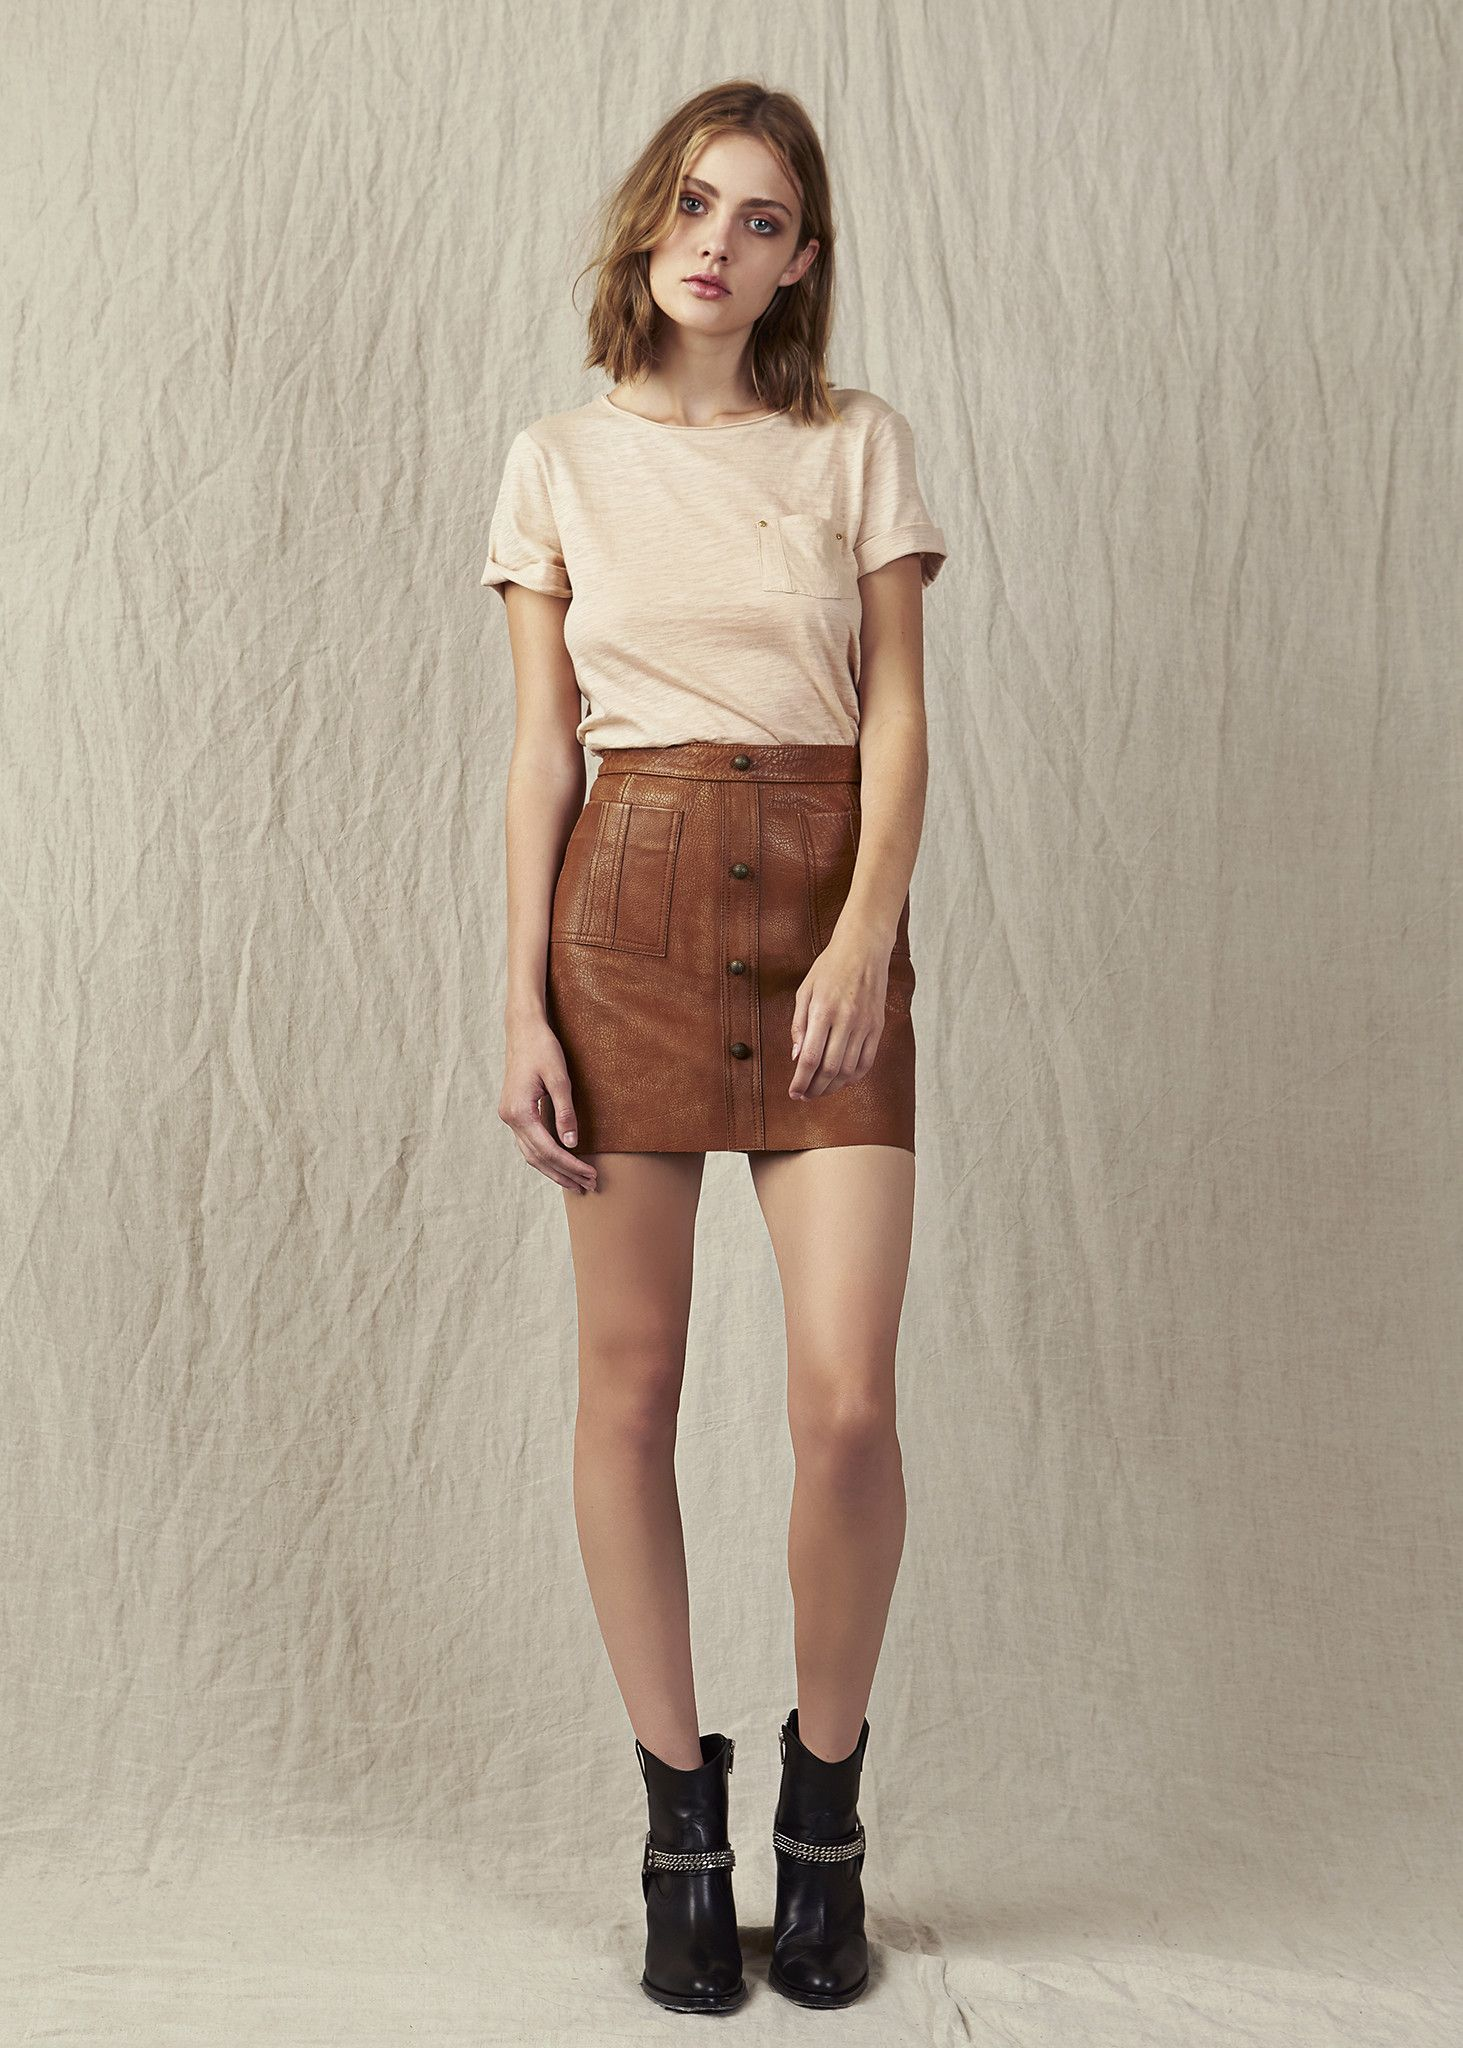 486ab2e83 Shrimpton Mini in 2019 | Clothes | Mini skirts, Skirts, Tan suede skirt